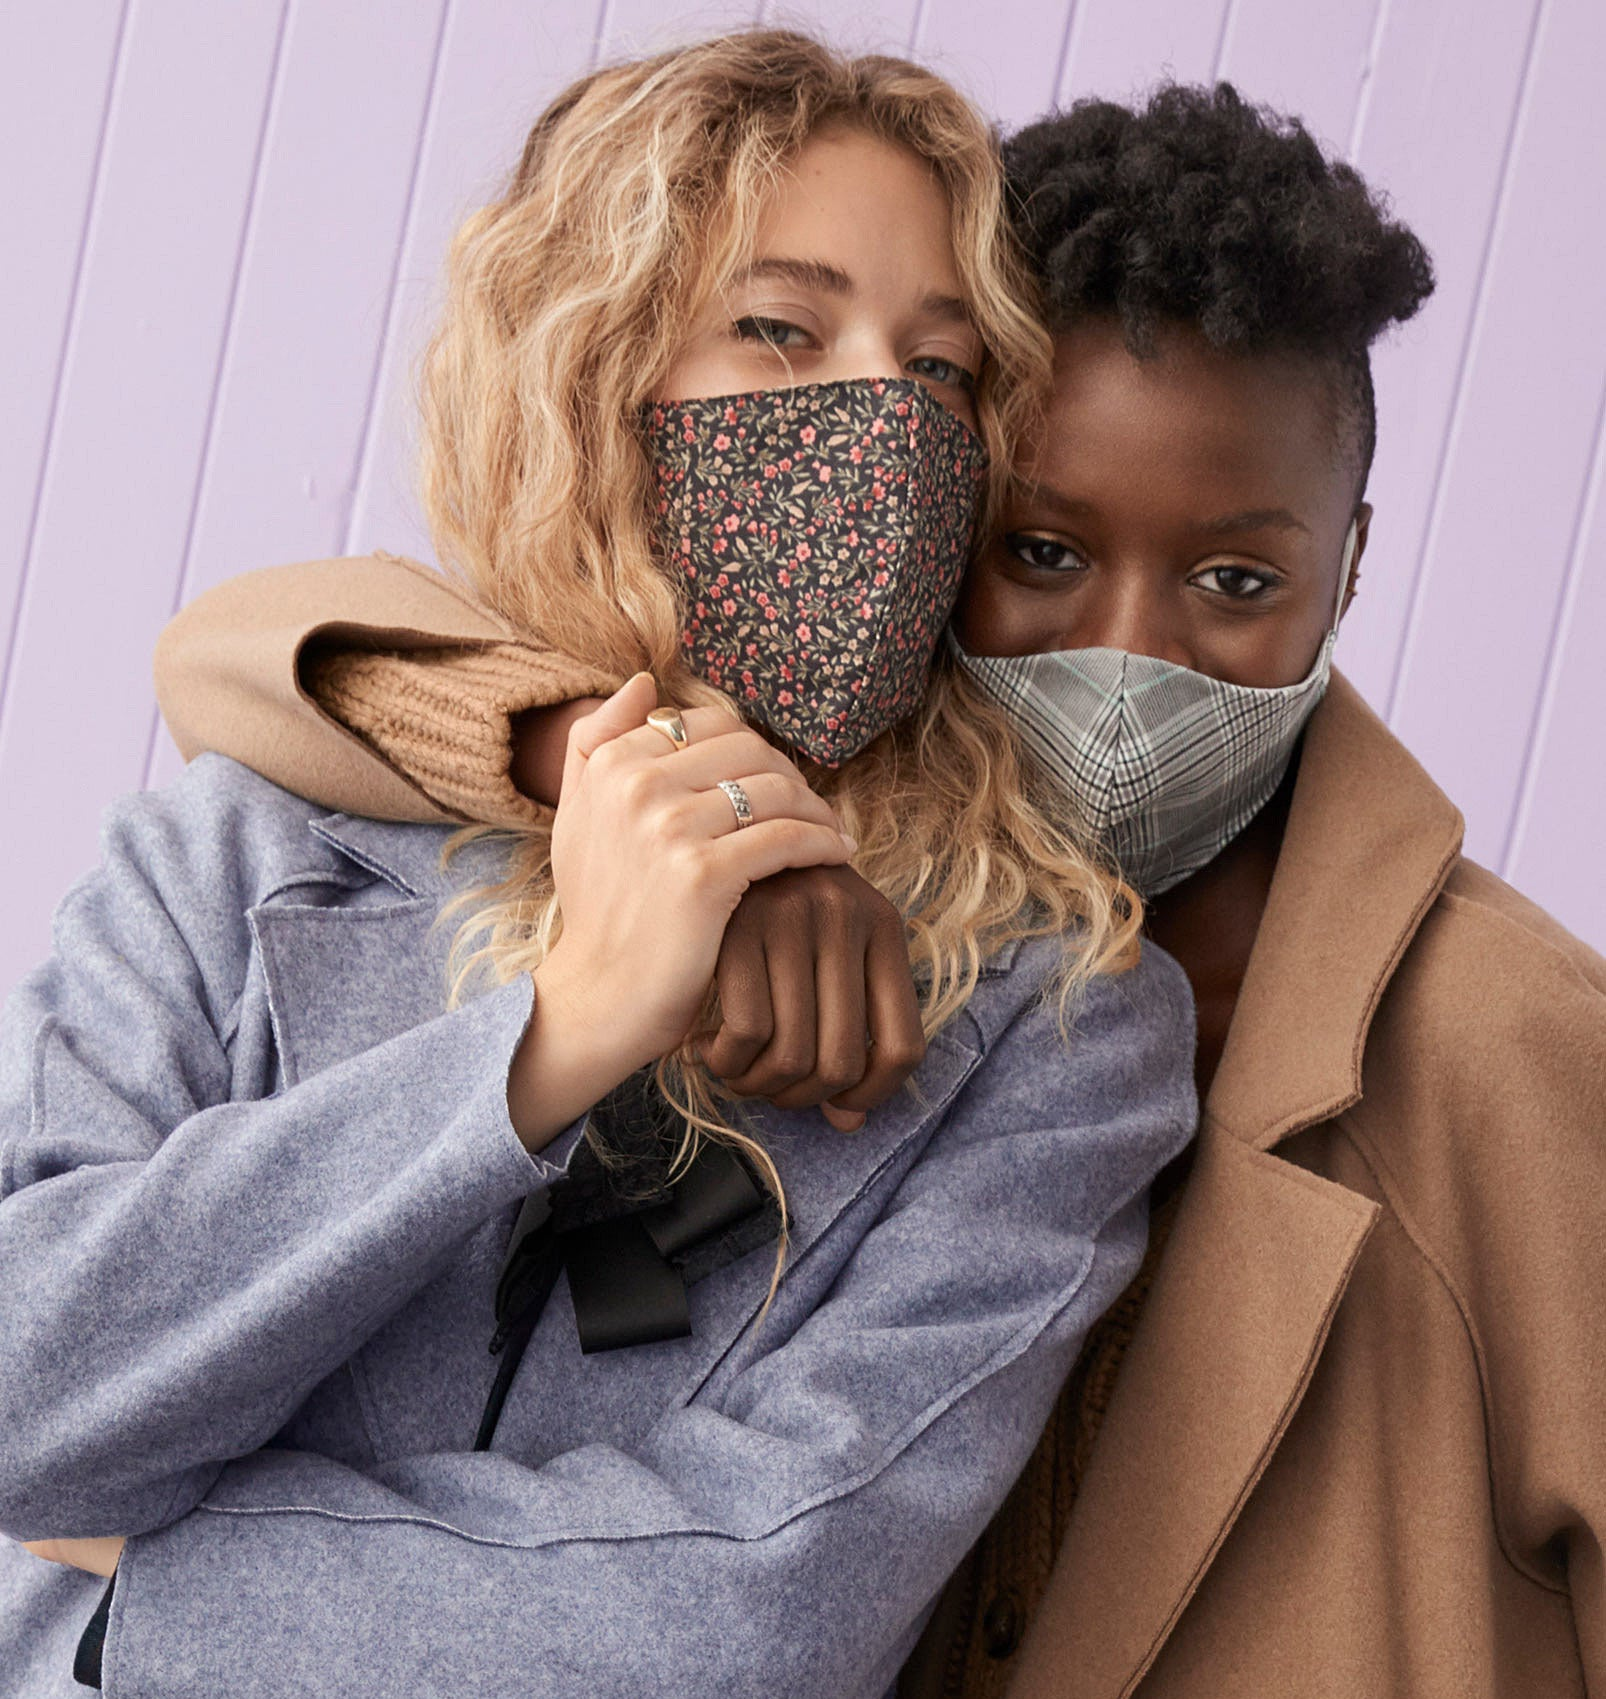 Two people wearing jackets and face masks